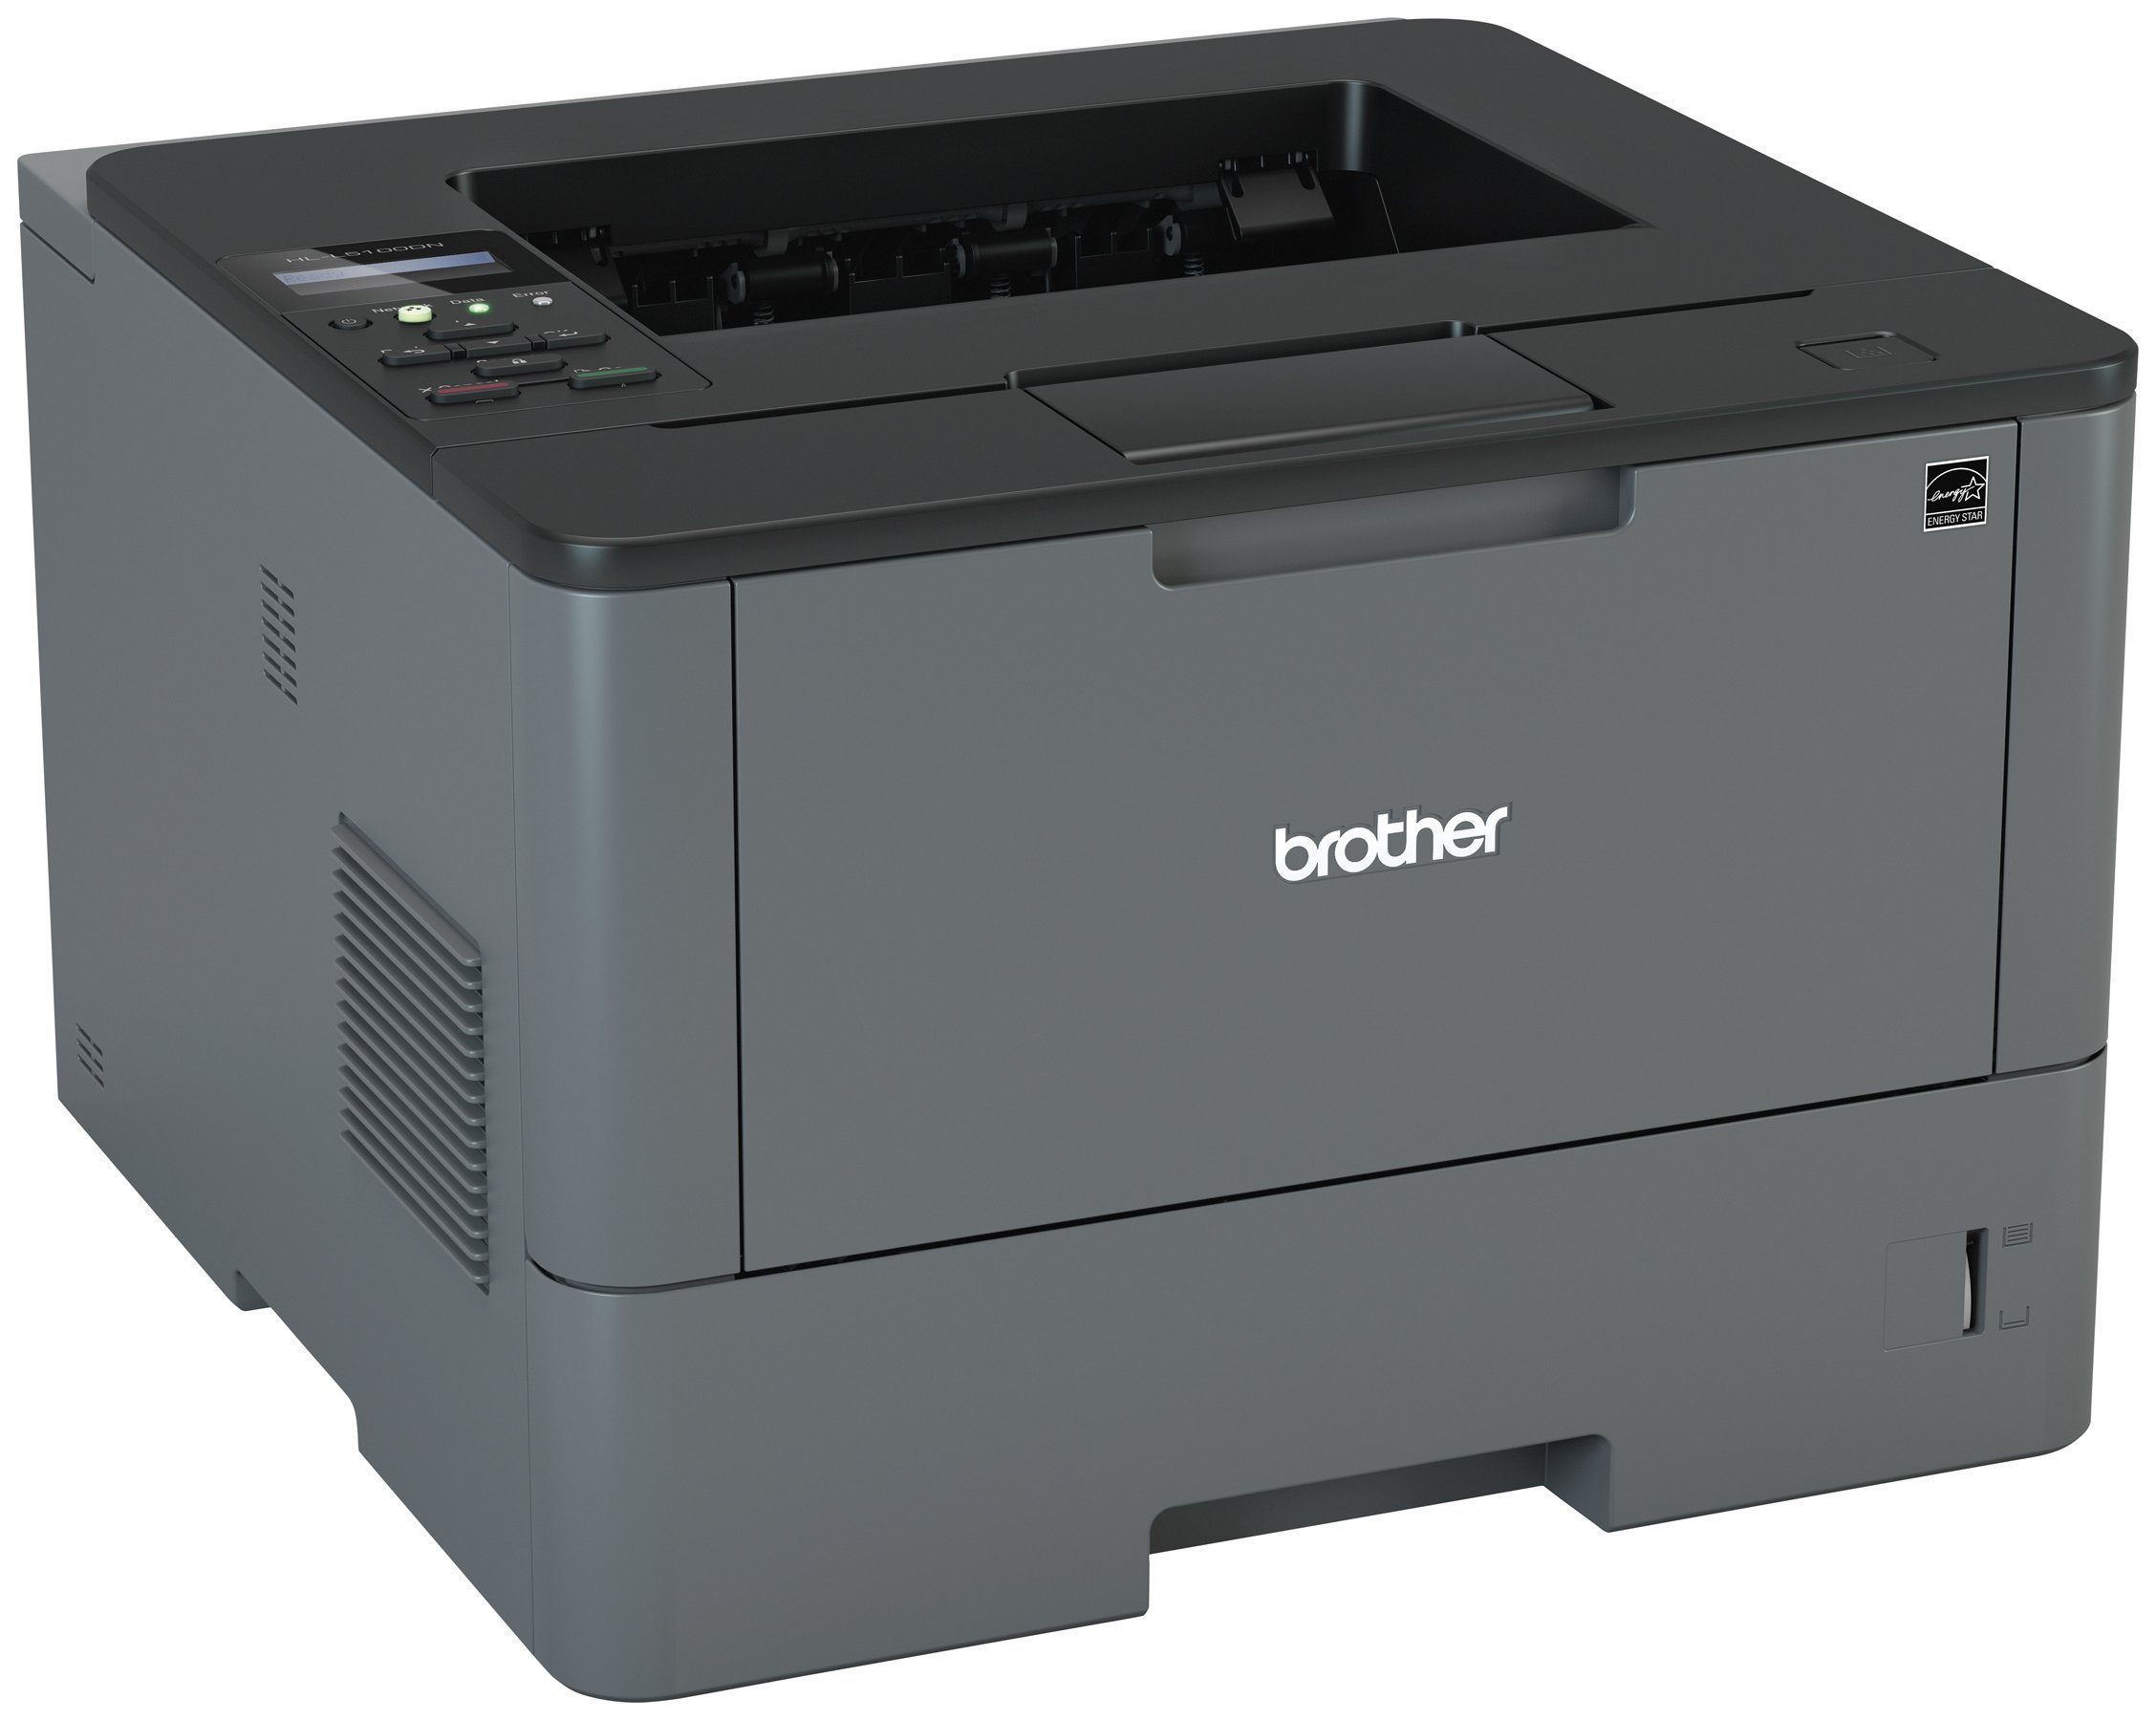 Brother HLL5100DN Business Laser Printer with Networking and Duplex, Amazon Dash Replenishment Enabled by Brother